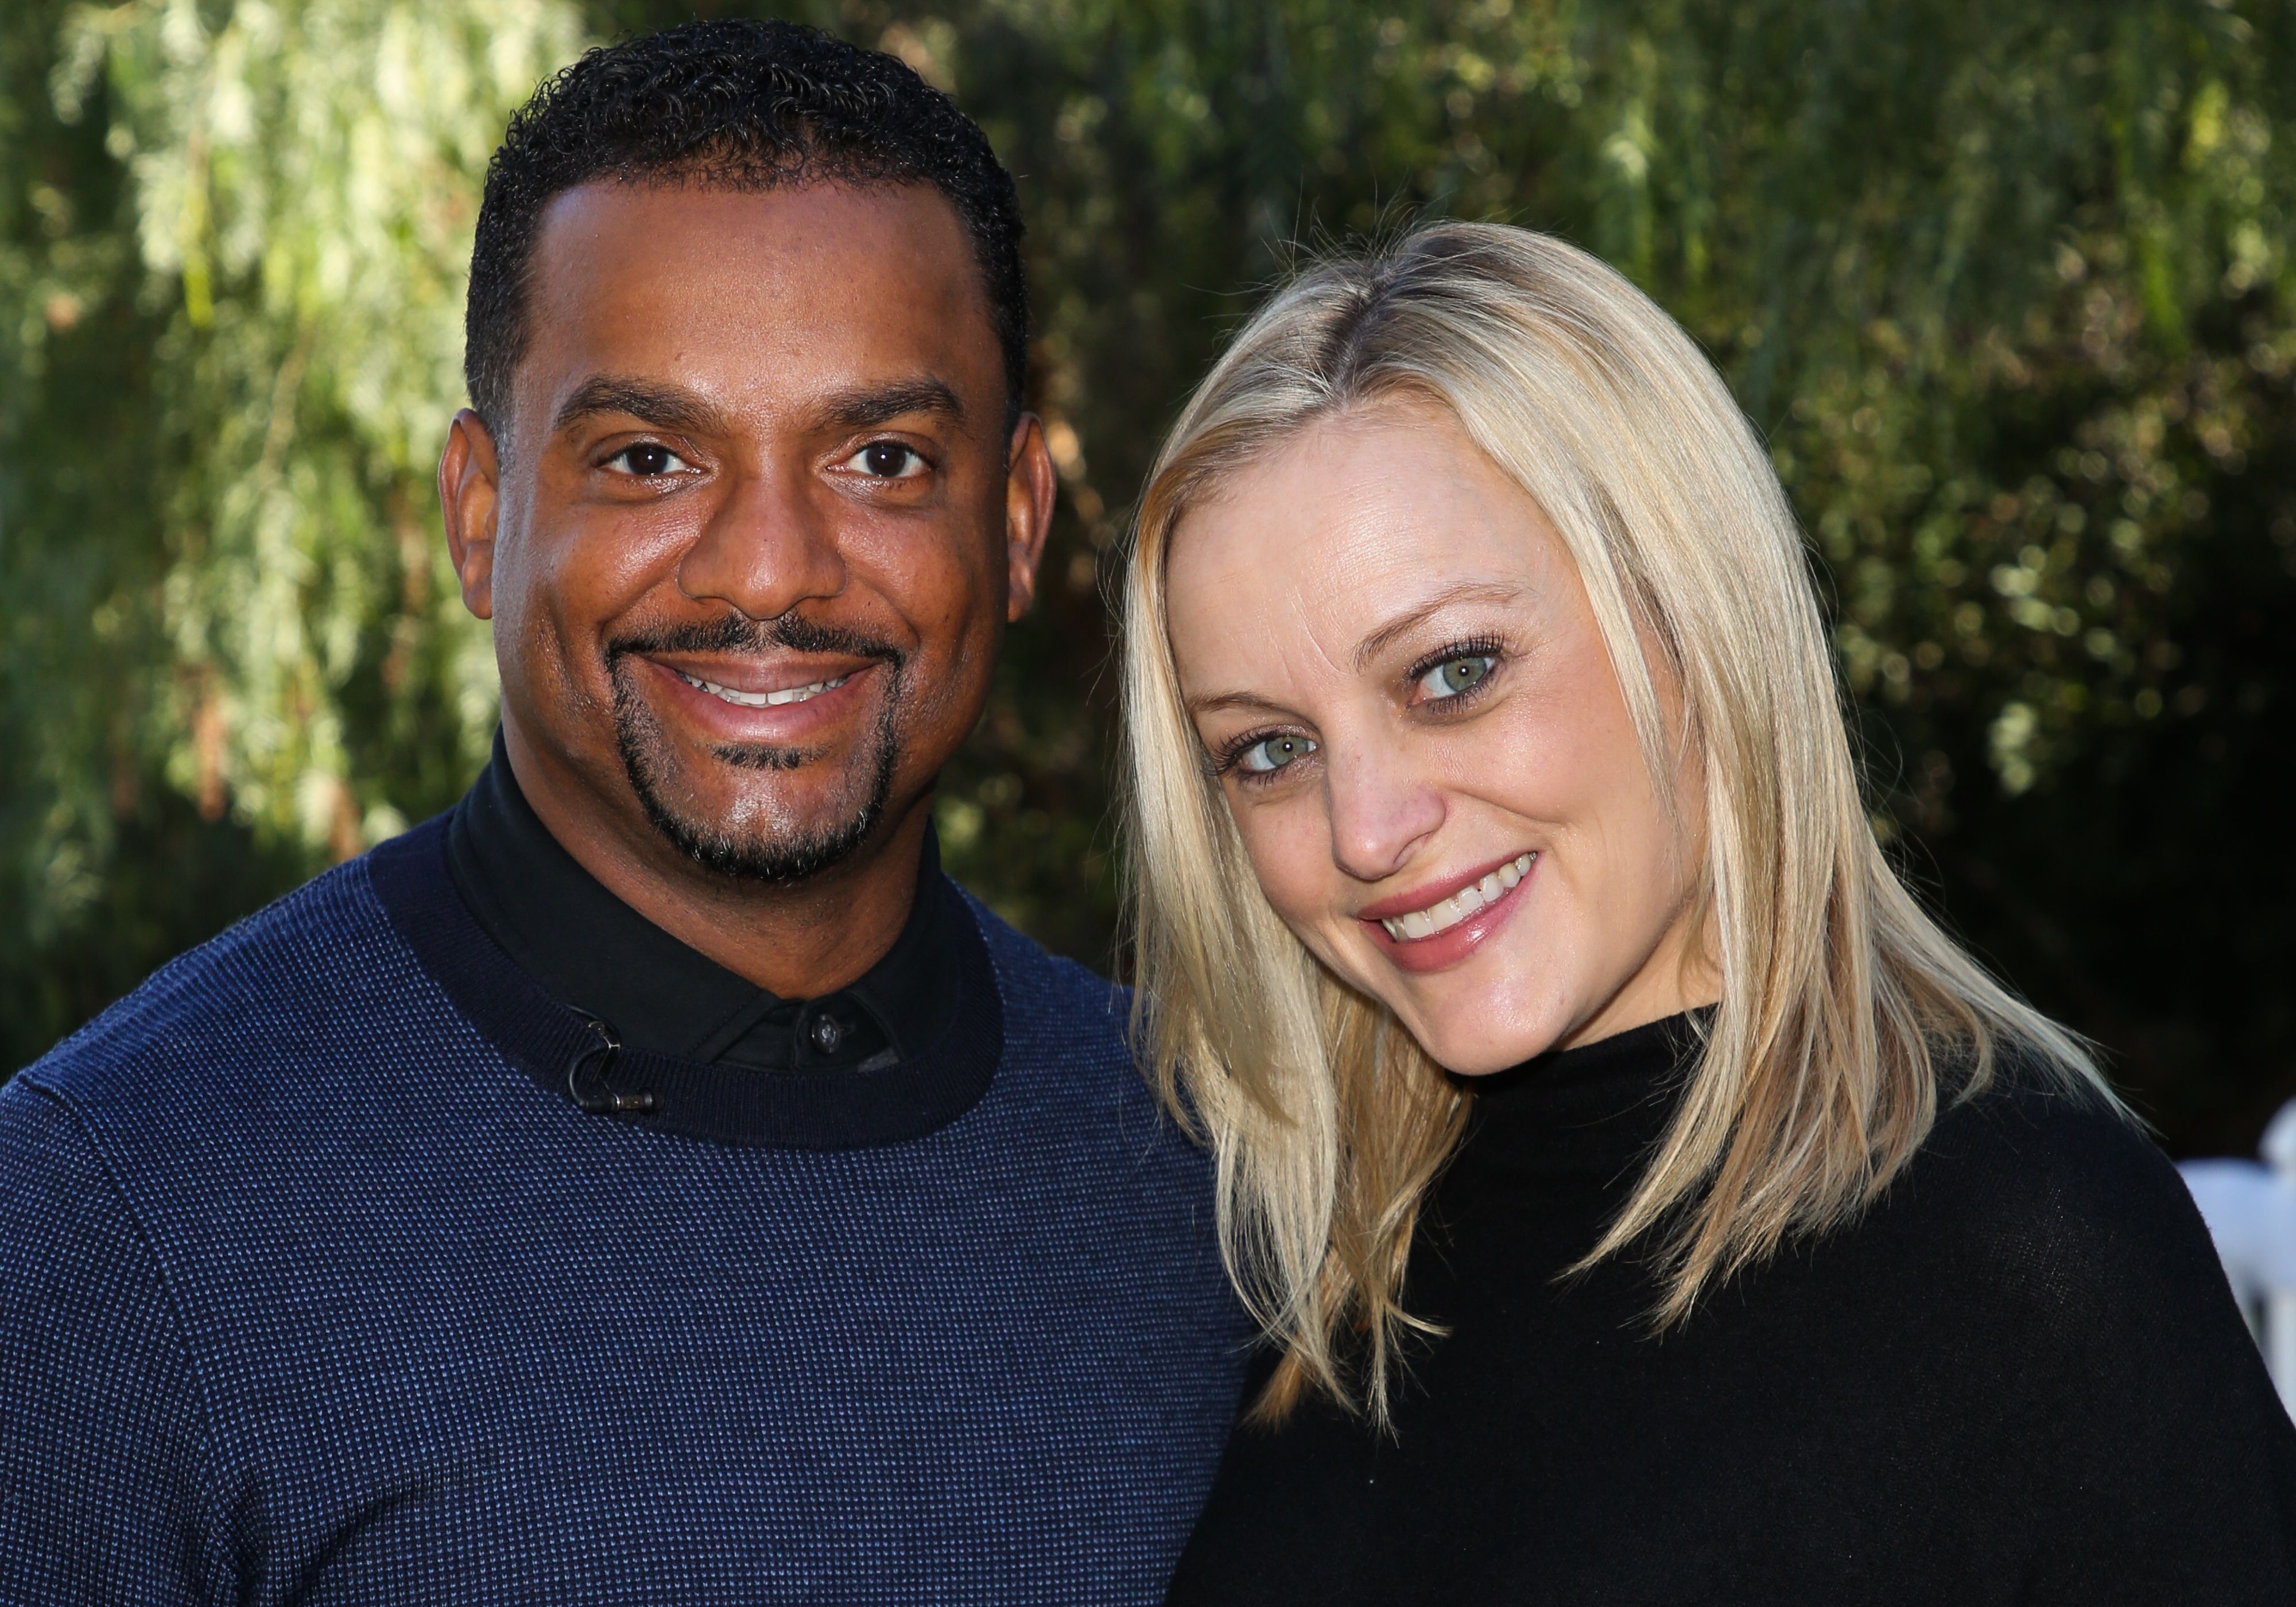 """Actor Alfonso Ribeiro and his Wife Angela Unkrich at Hallmark's """"Home & Family"""" at Universal Studios Hollywood on December 15, 2018   Photo: Getty images"""